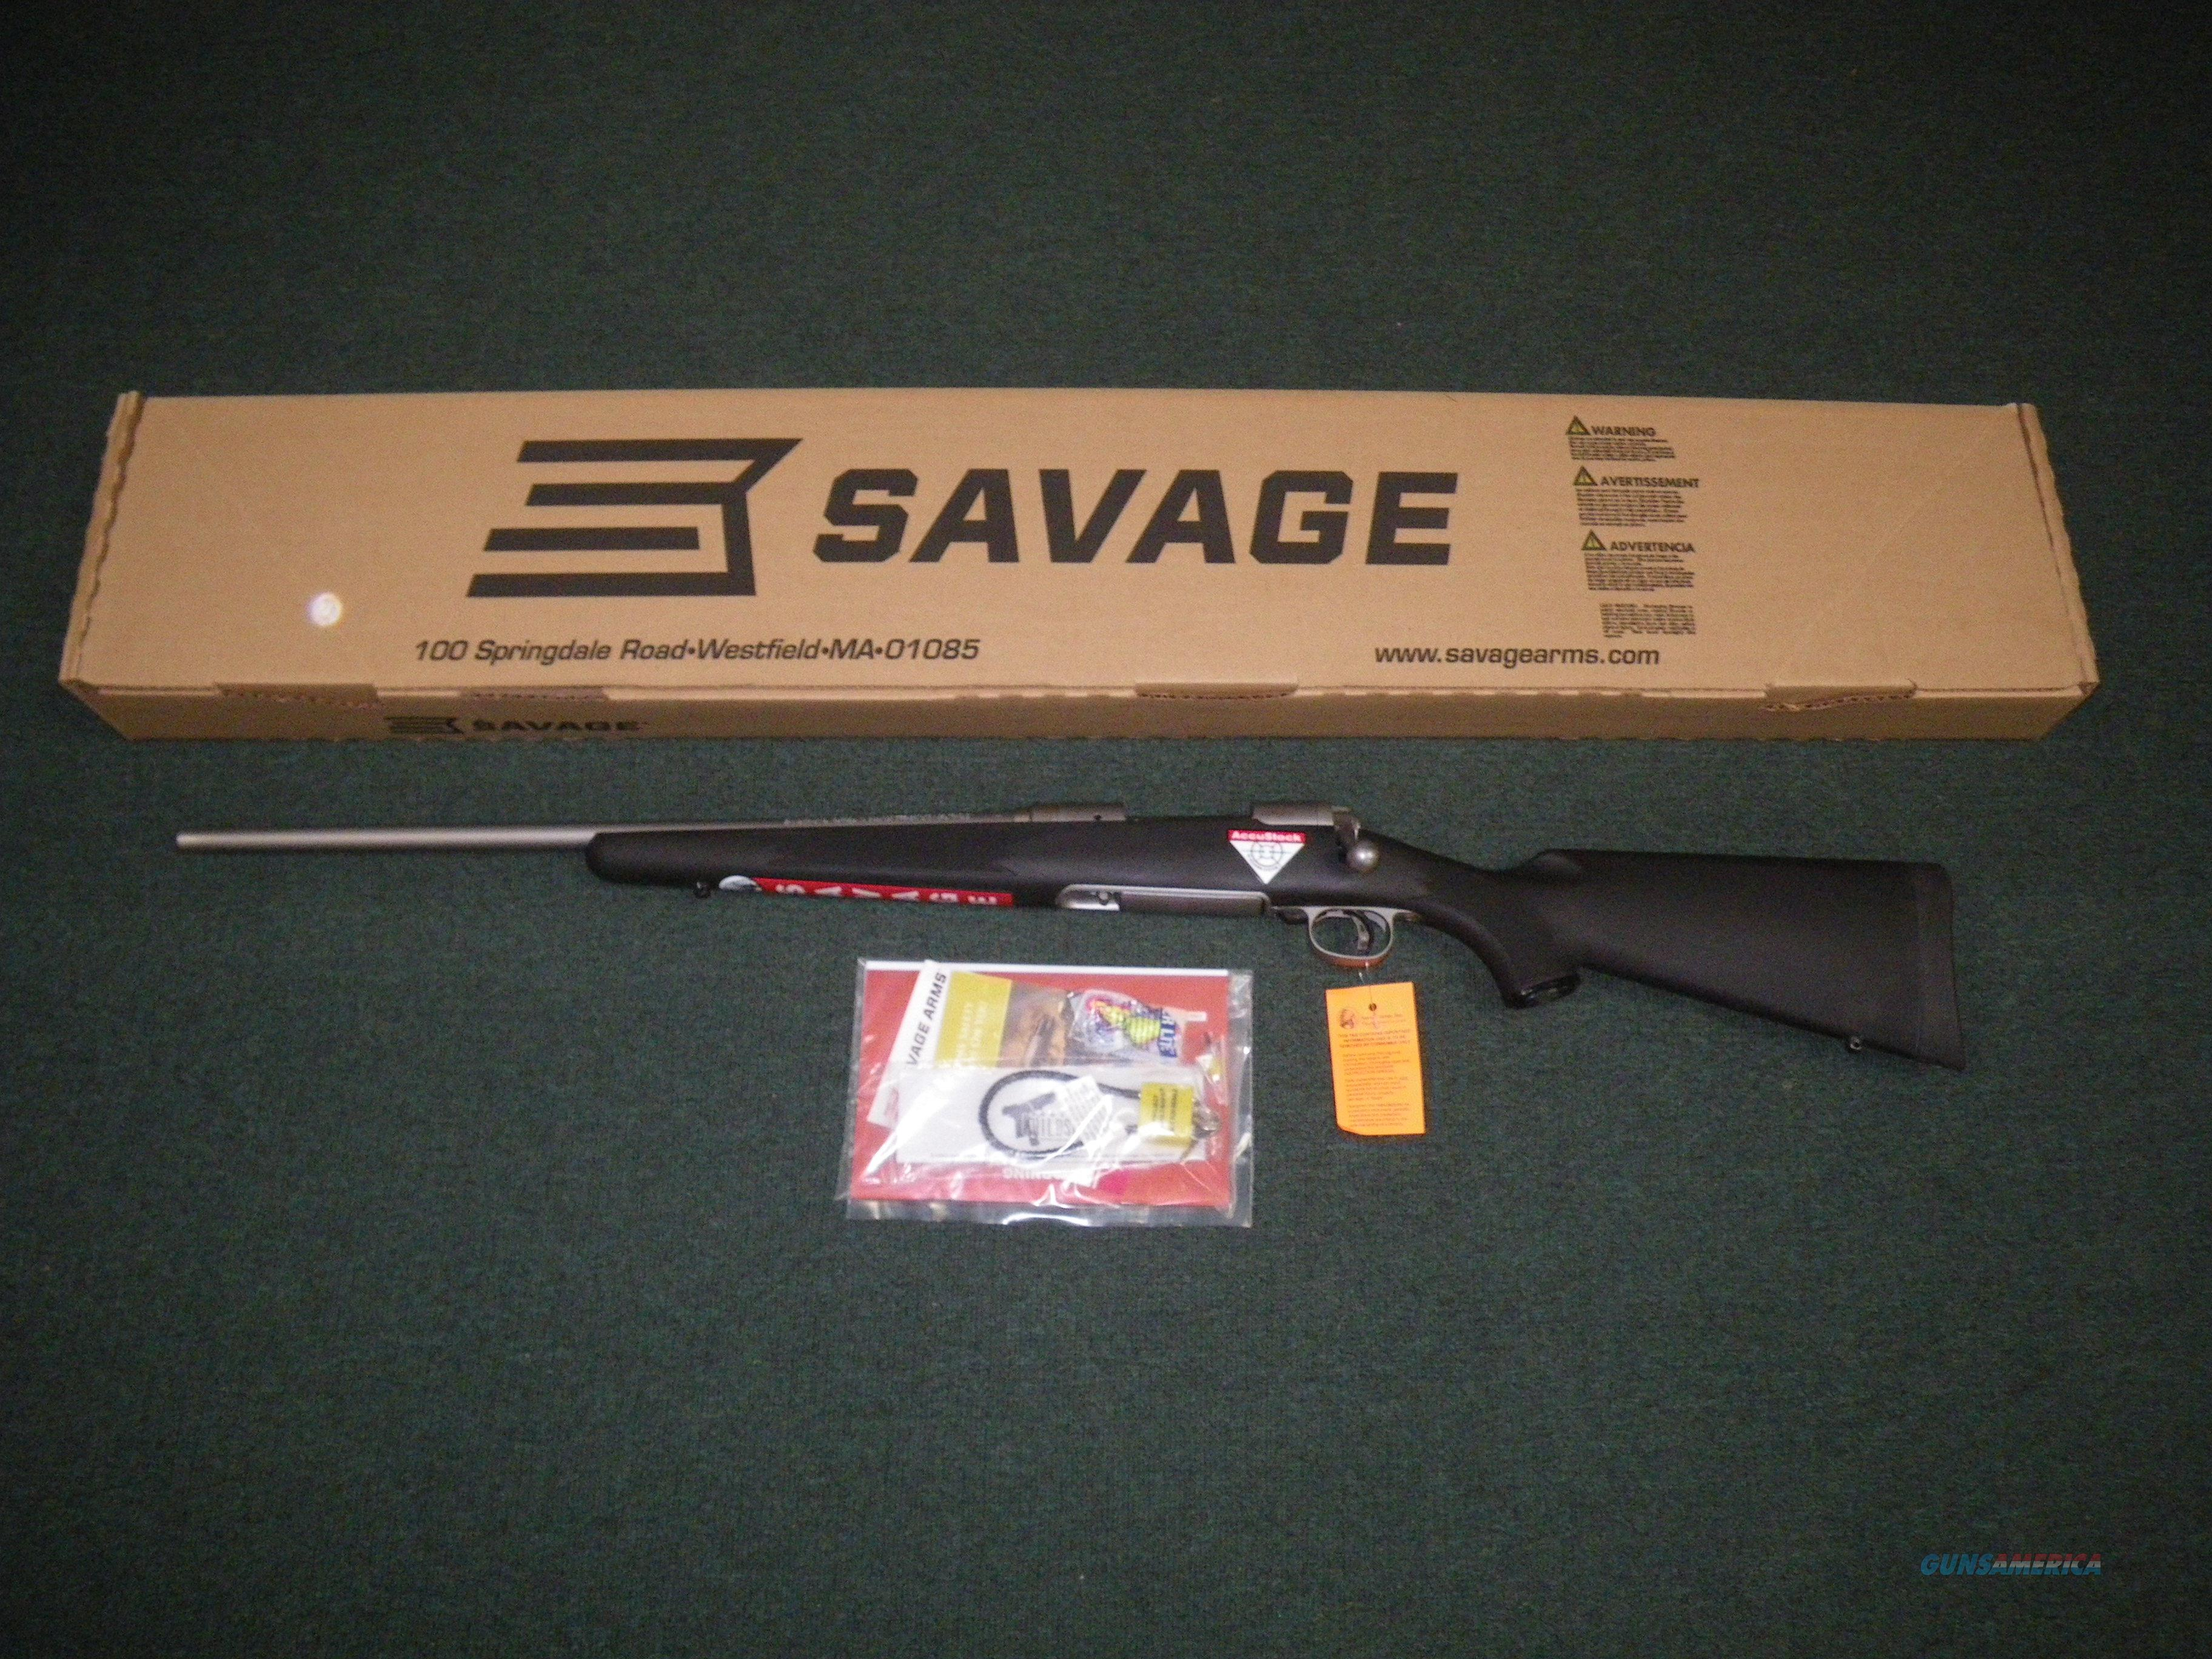 "Savage 16/116 FLCSS LH Stainless 30-06 Spfld 22"" NEW #22202  Guns > Rifles > Savage Rifles > 16/116"